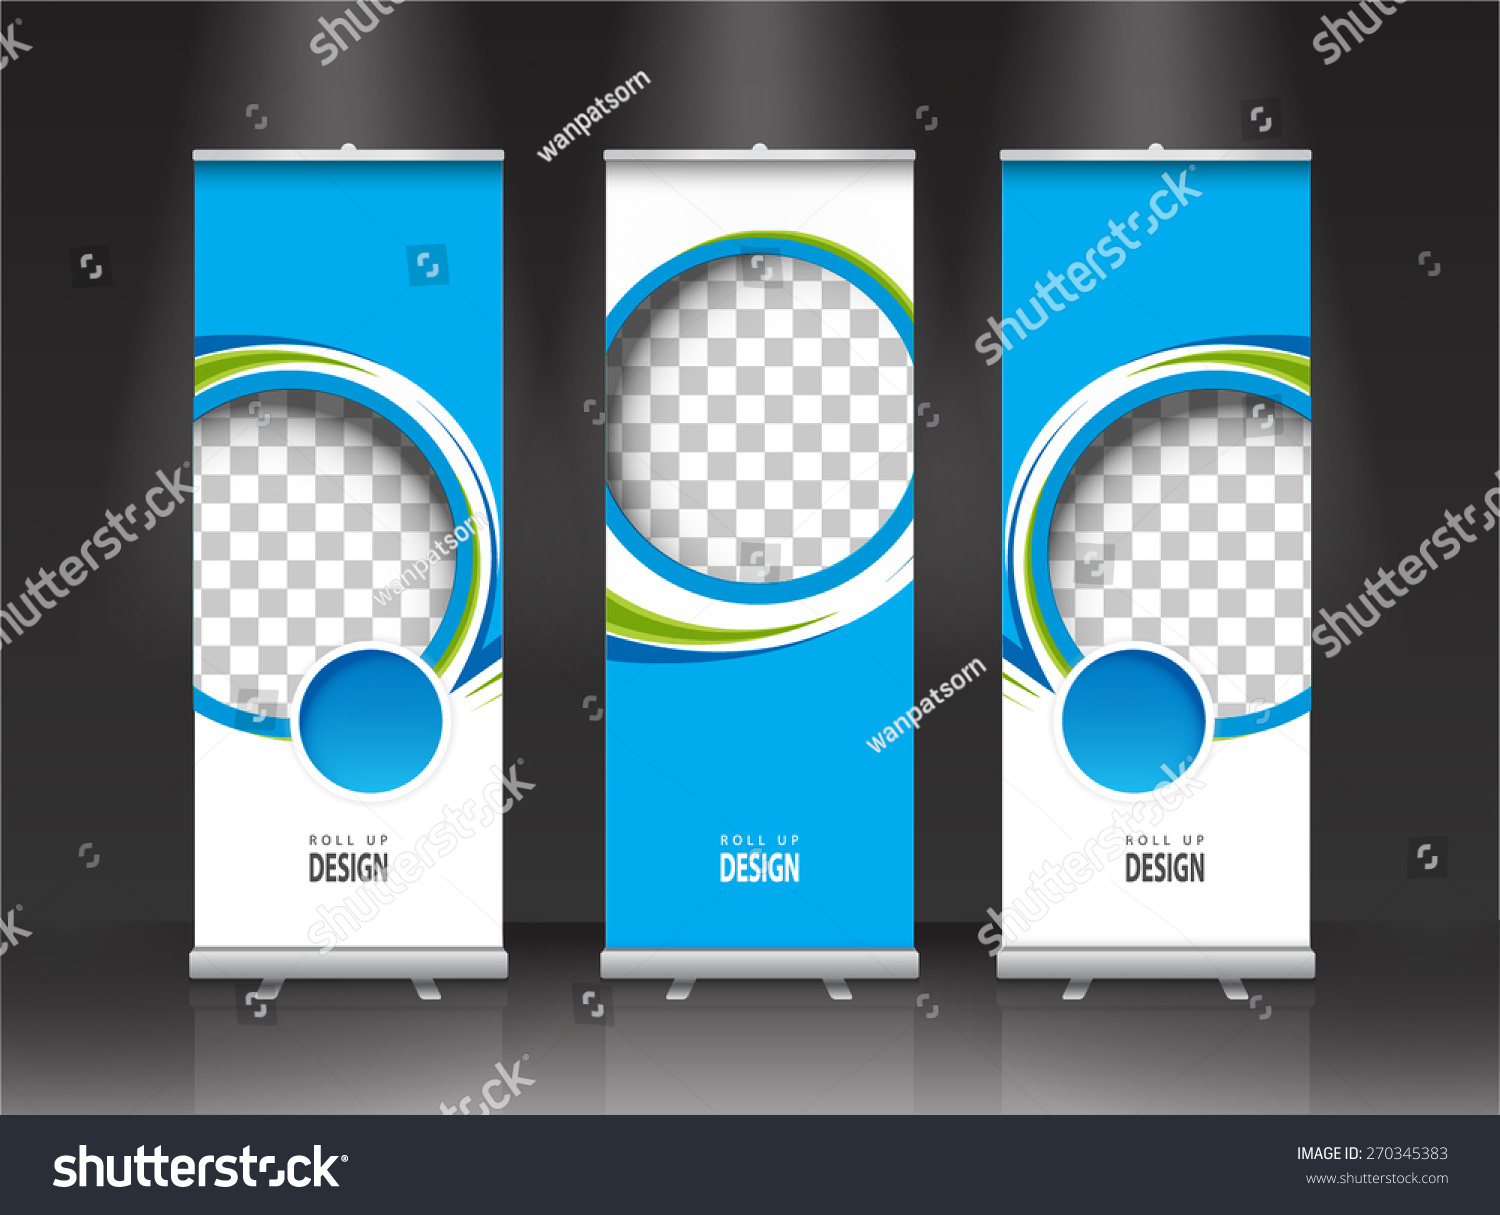 Stand Up Banner Designs : Roll banner stand design vector stock